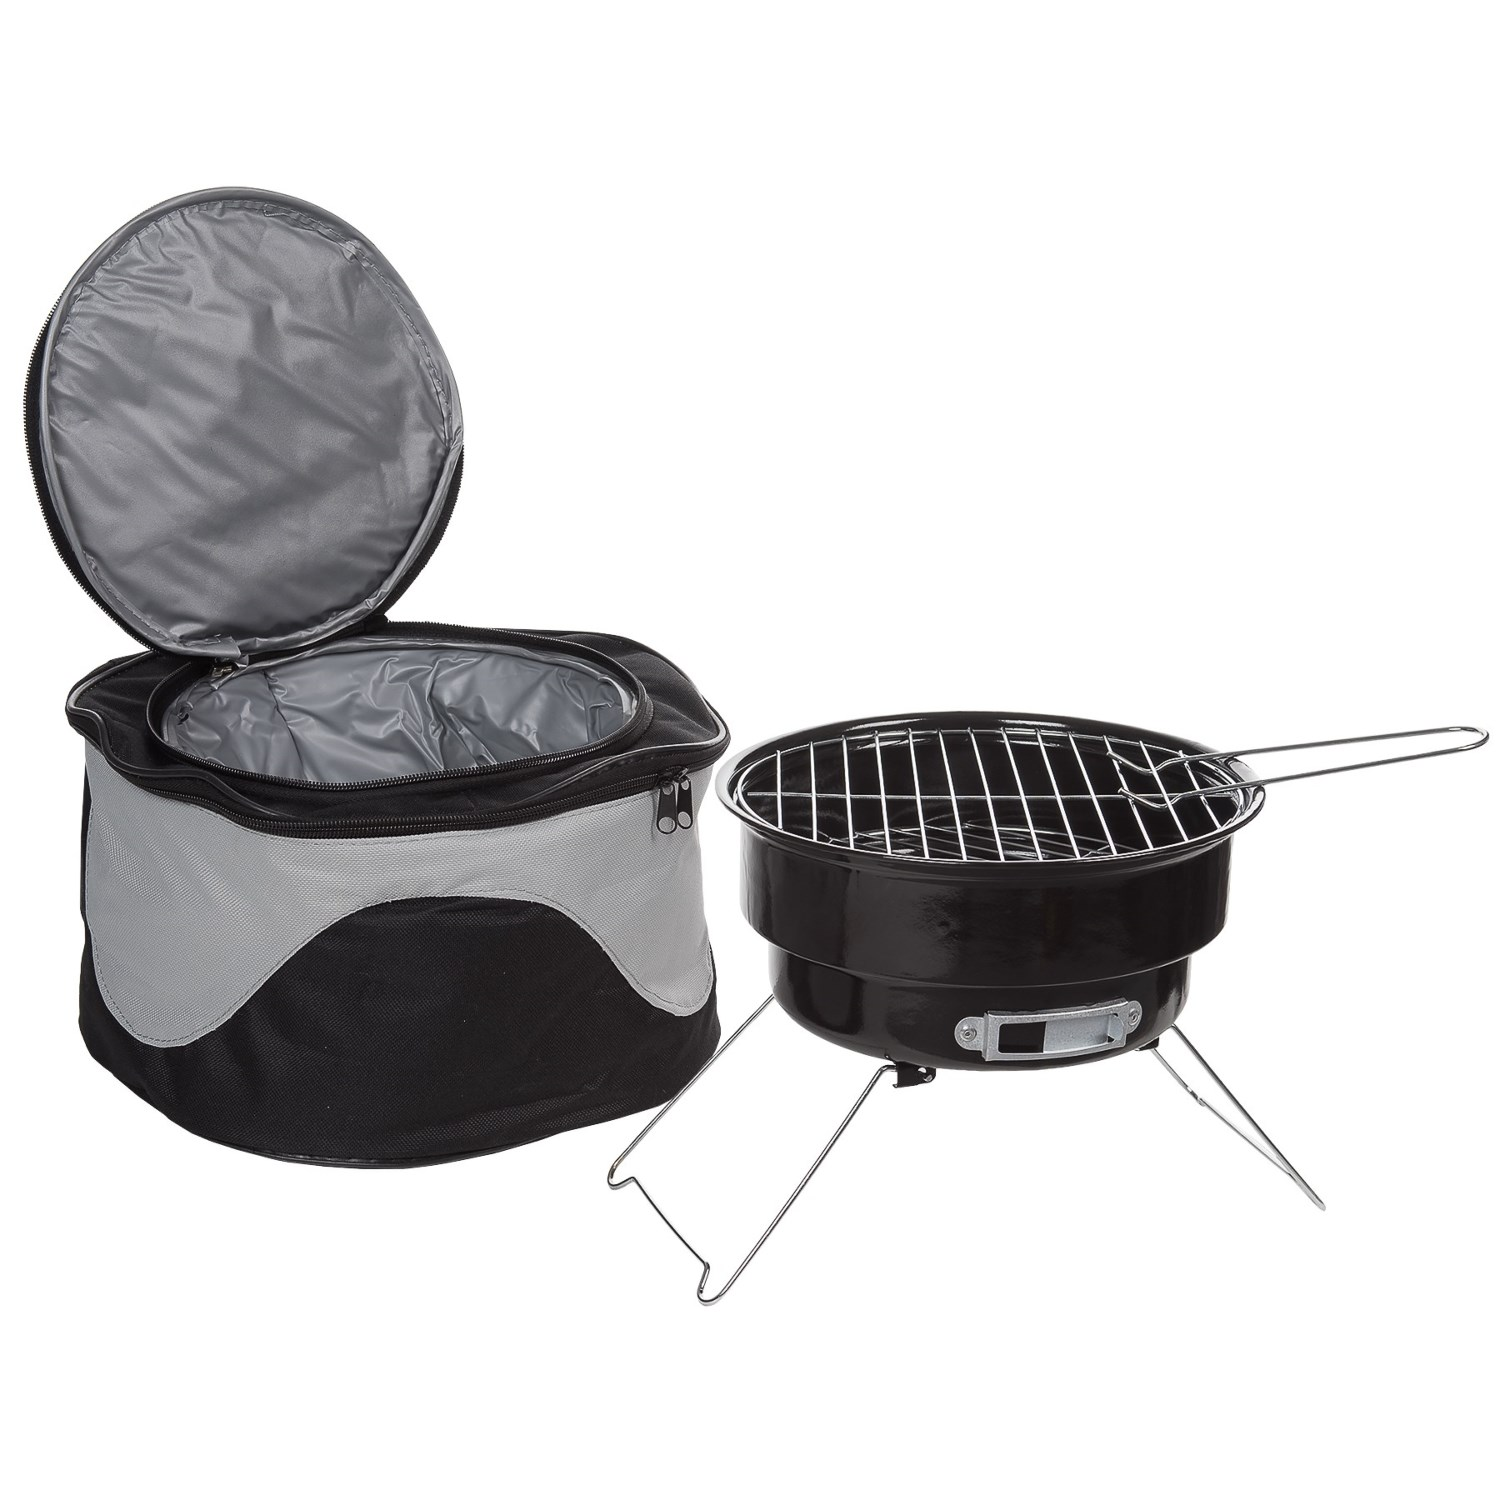 Small Barbecue Grill Big Backyard Portable Barbecue Grill And Cooler Bag Combo